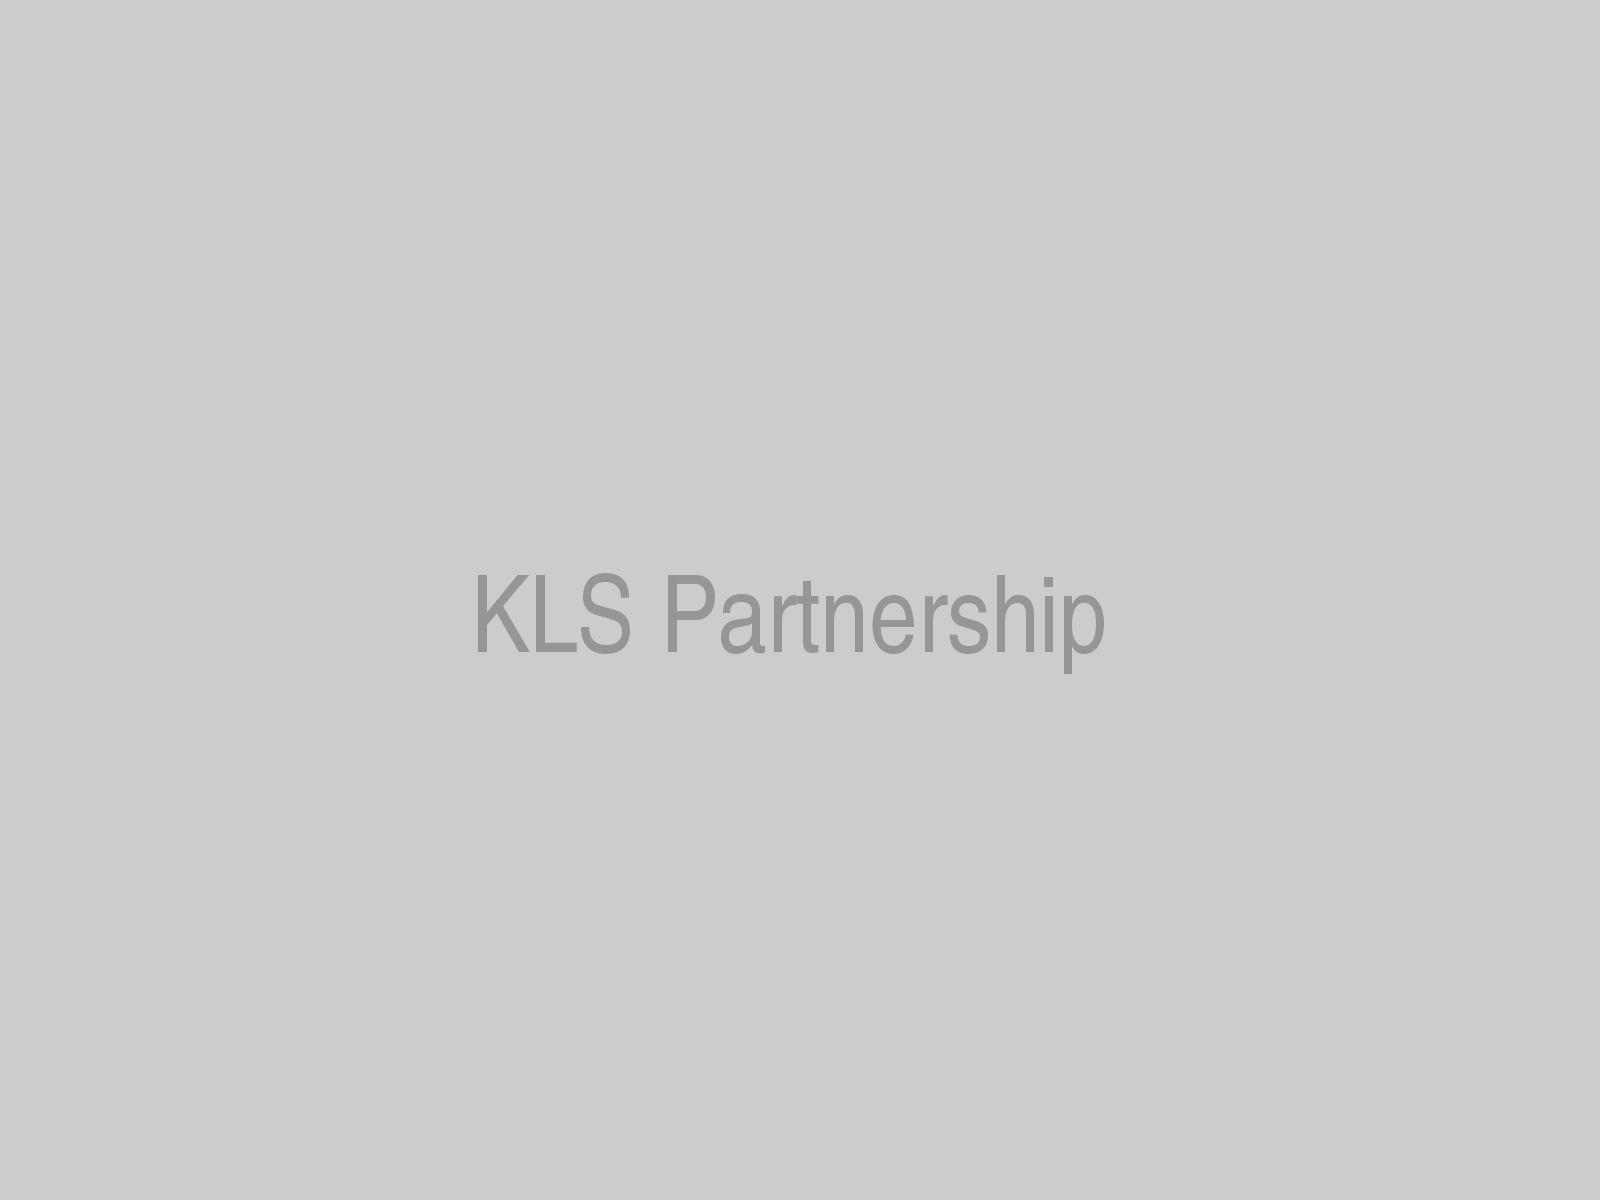 KLS Partnership